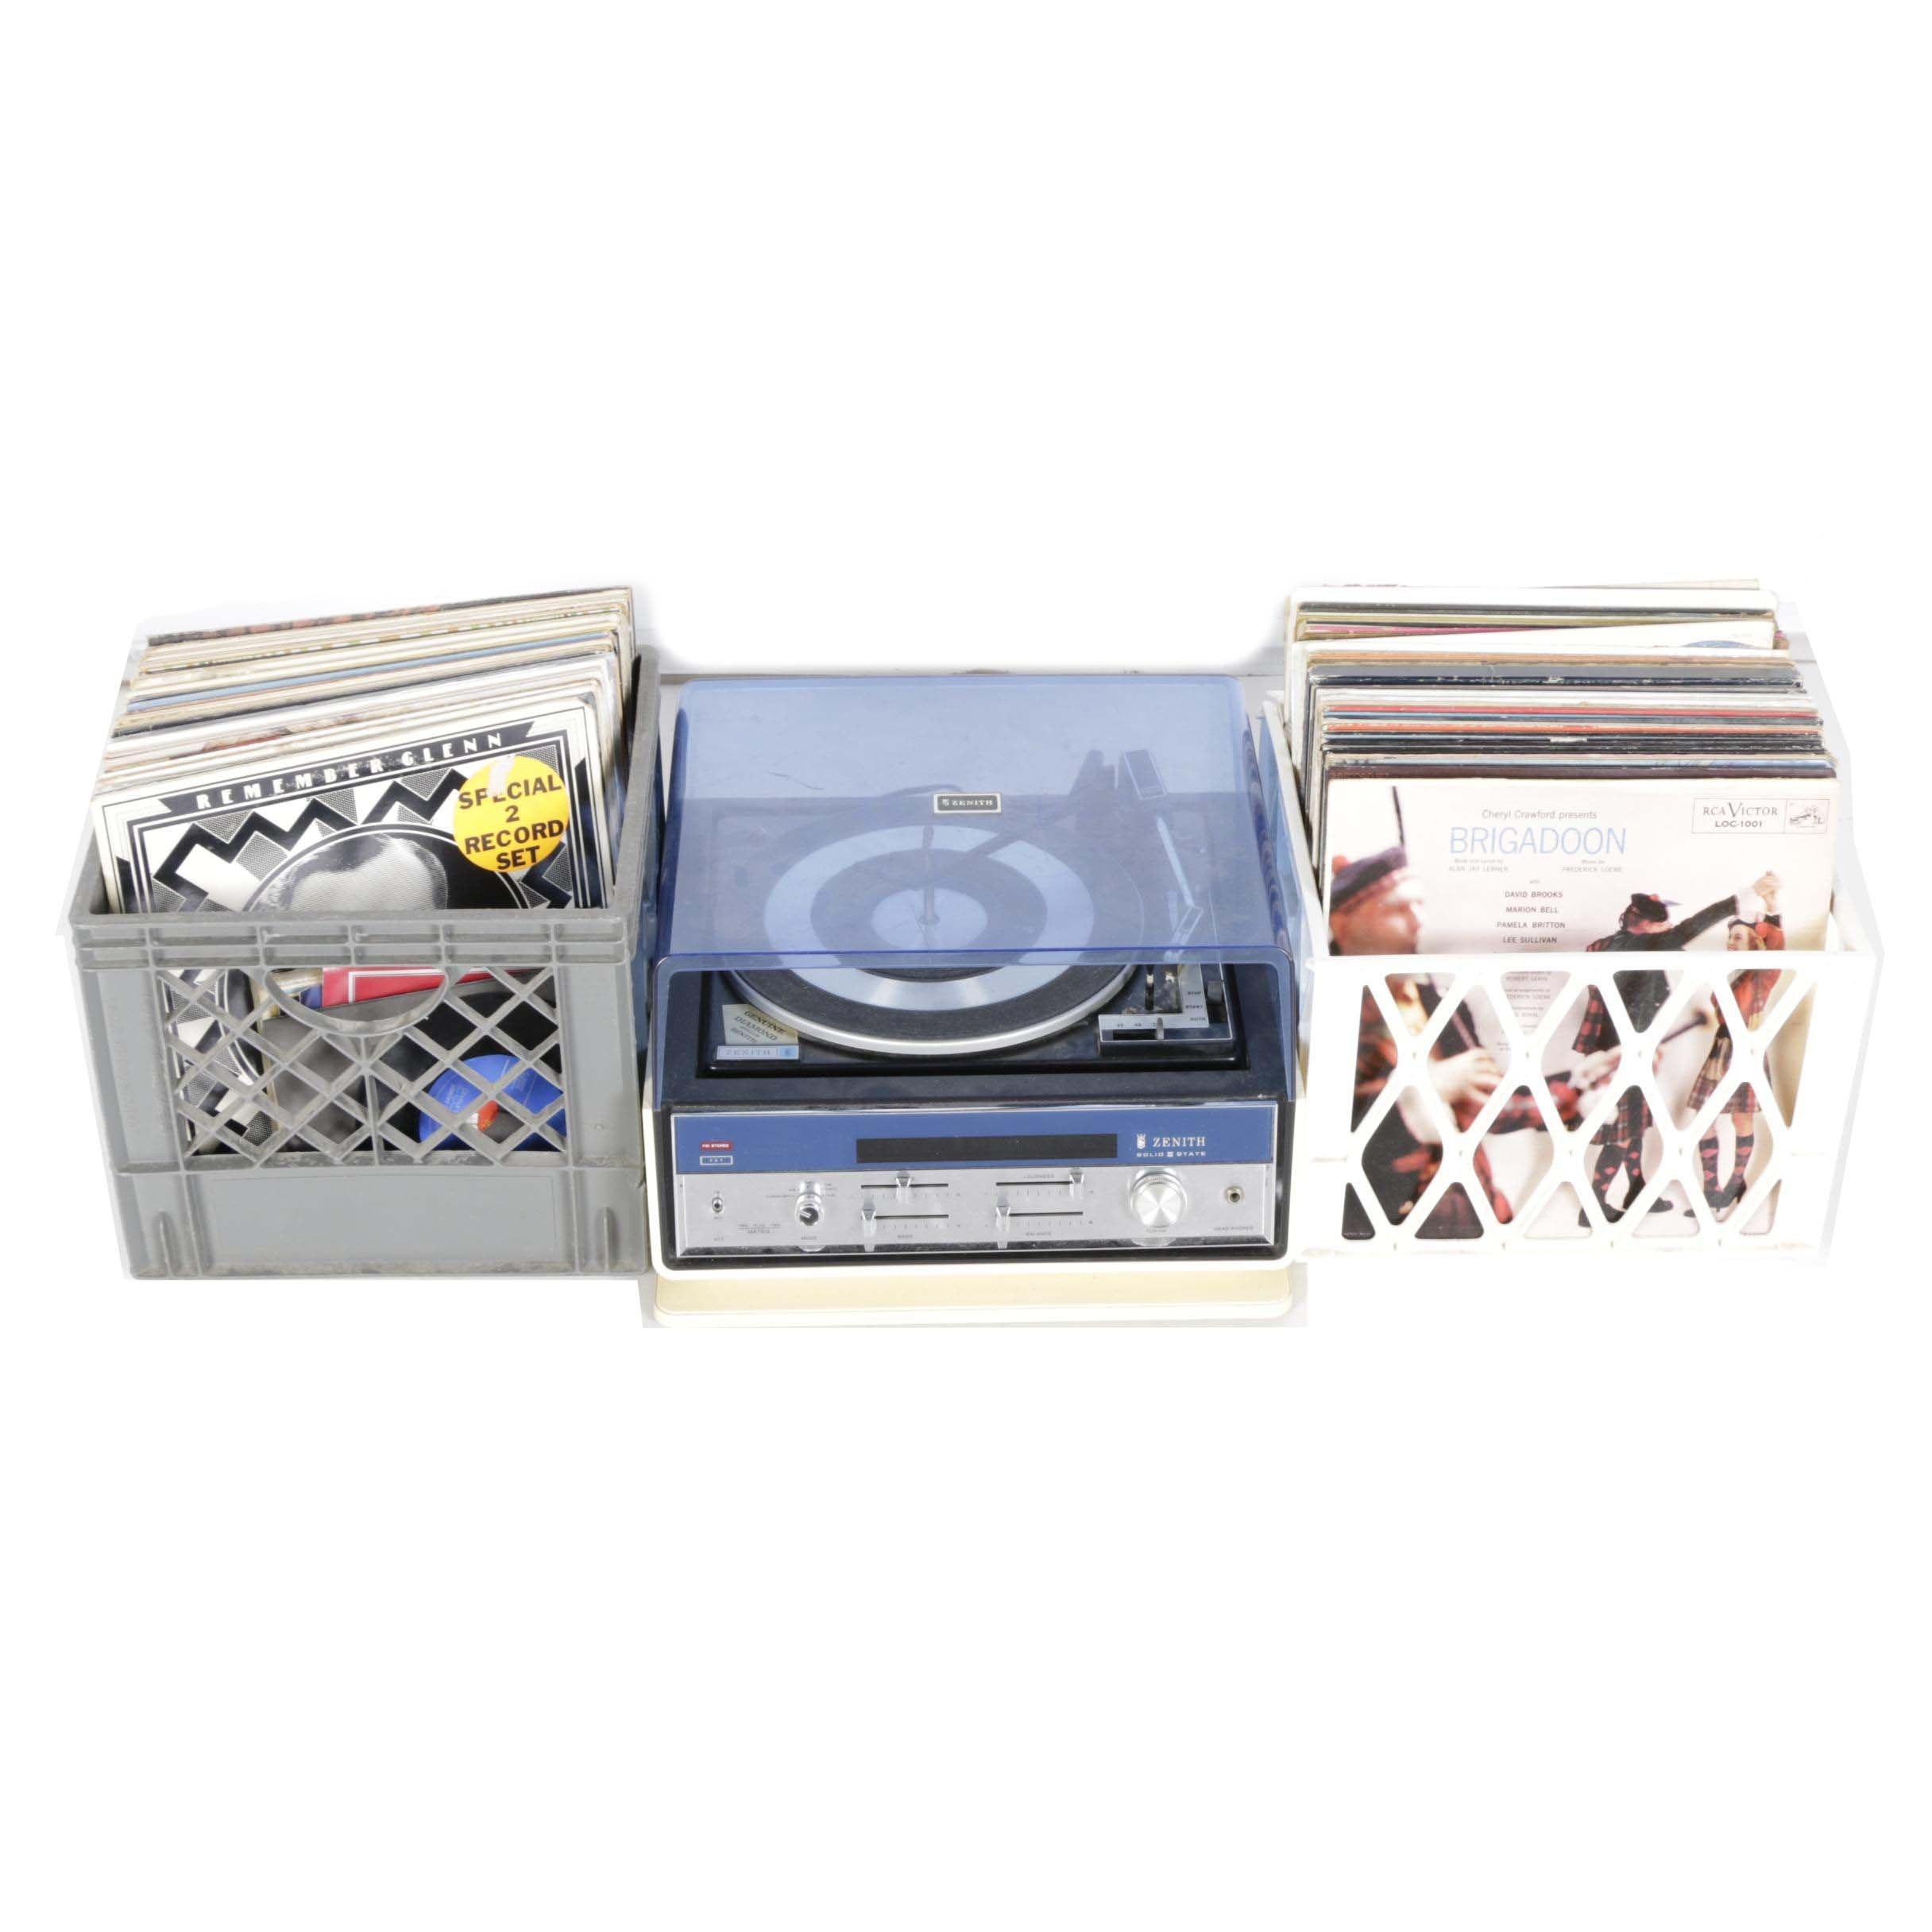 Vintage Zenith Record Player and Motown, Other LPs